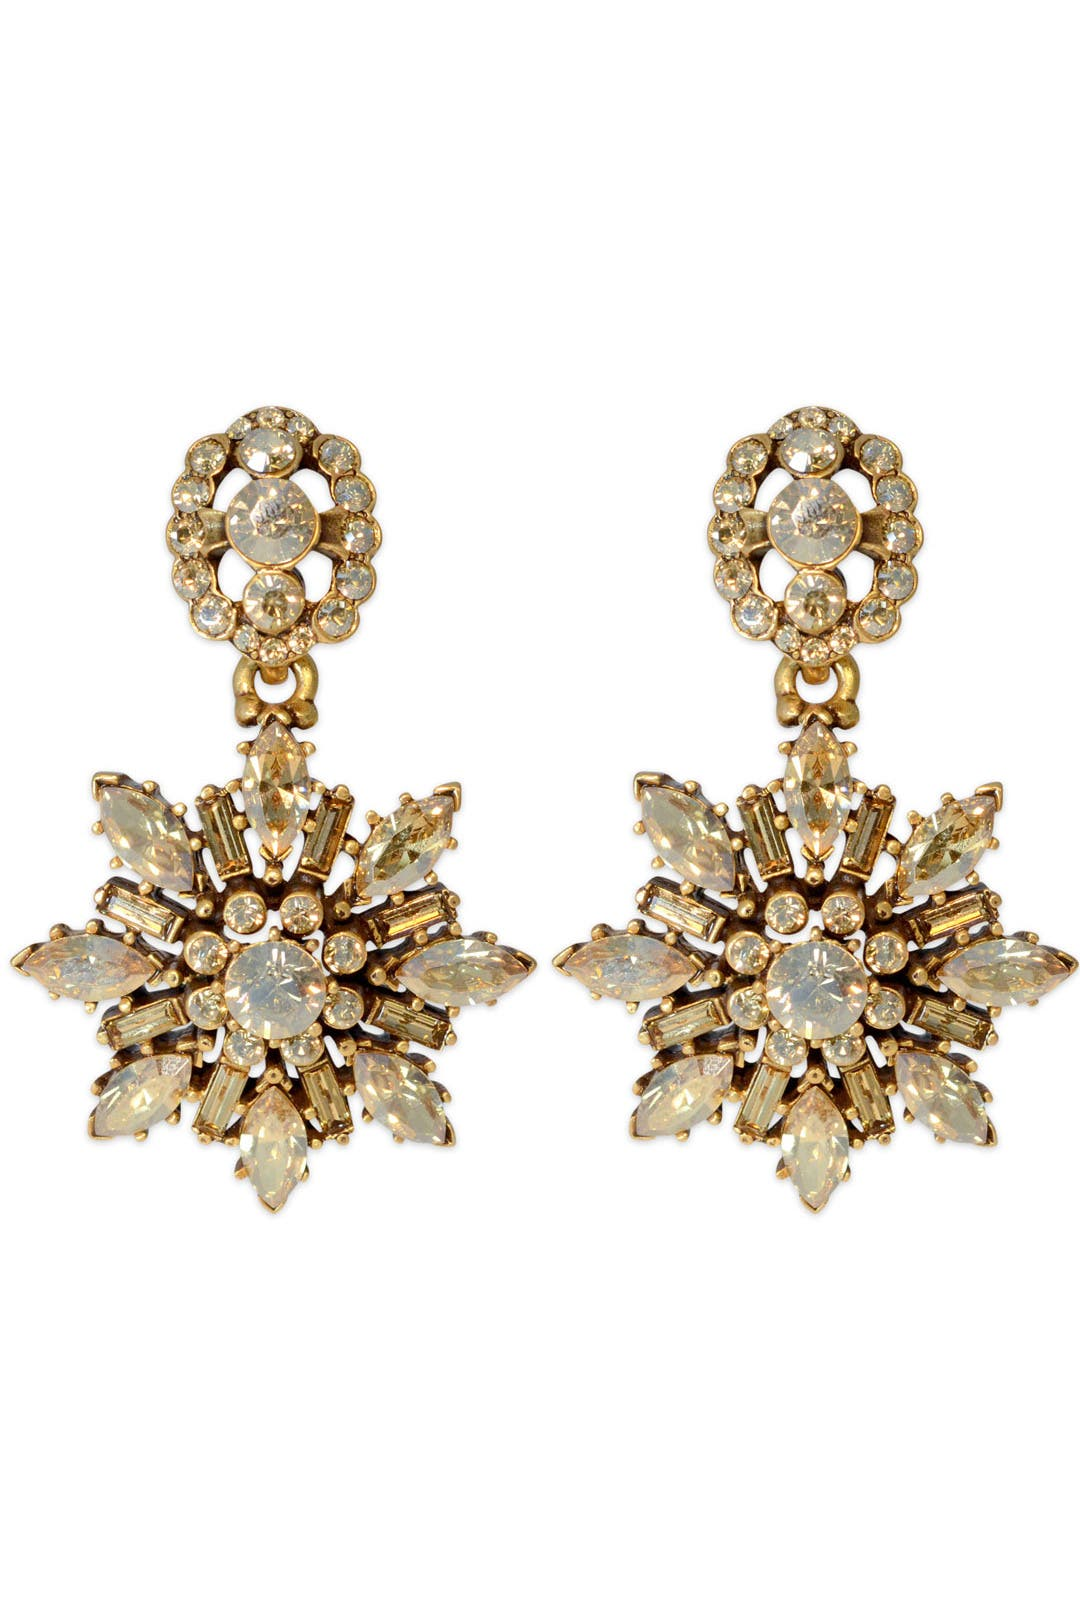 Etoile Earrings by Oscar de la Renta